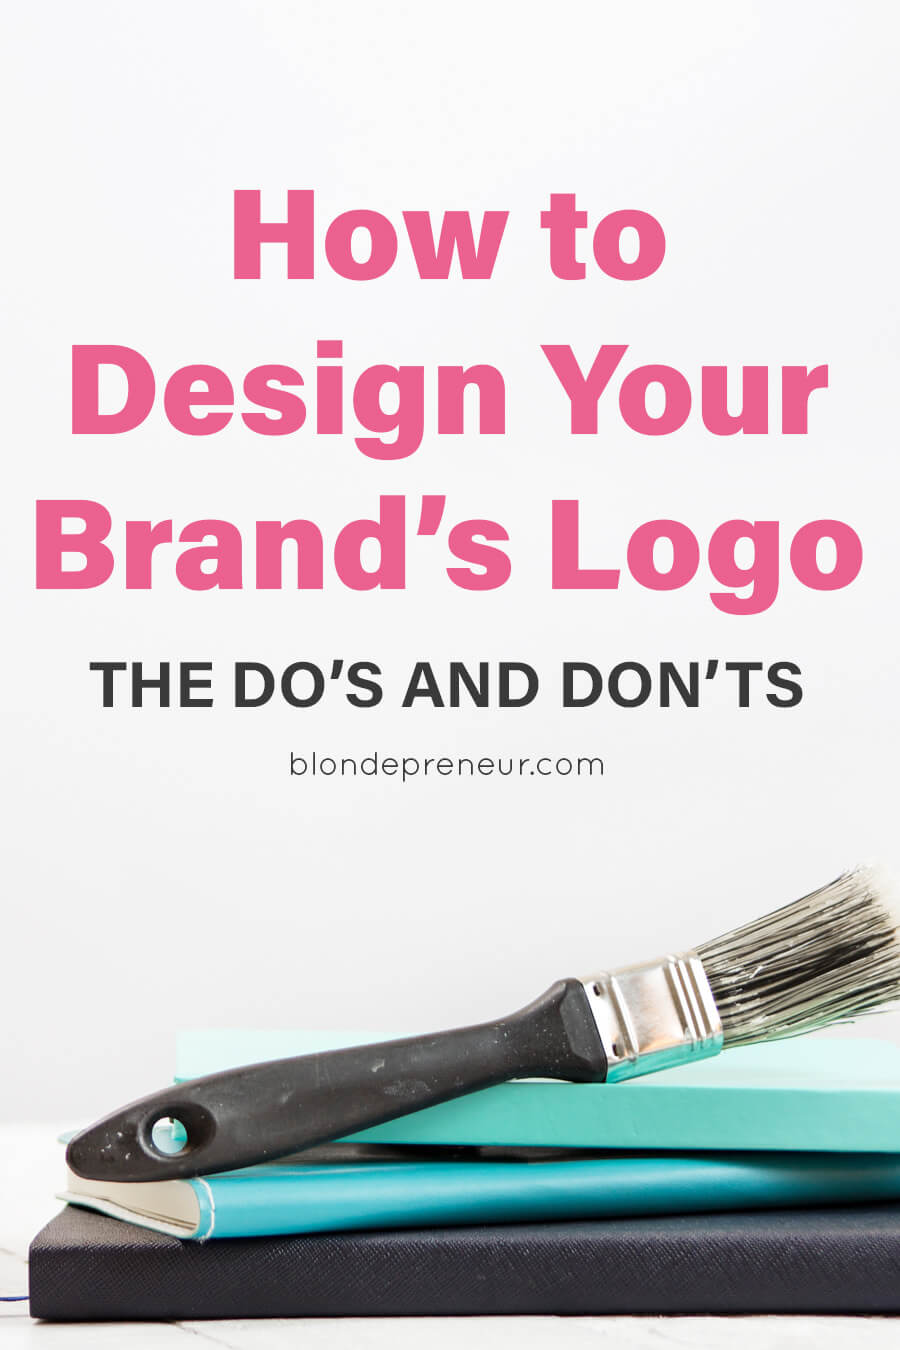 How to design your brand's logo. Learn from the do's and don'ts of logo design so you can DIY your logo and make it look professional without breaking the bank. #logo #logodesign #designtips #brandlogo